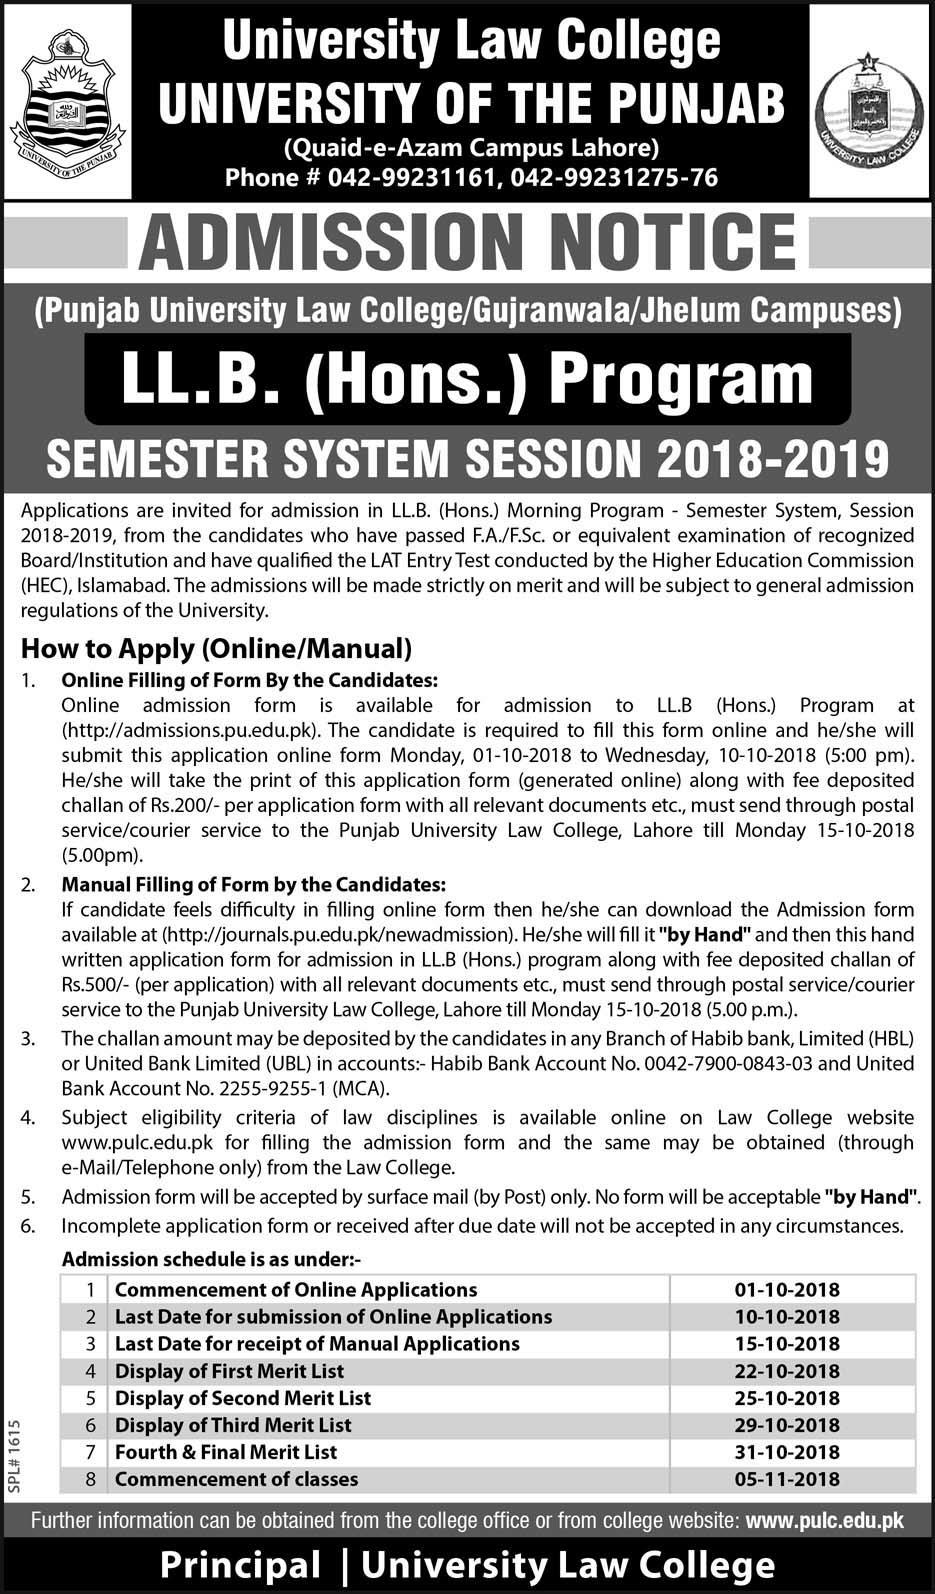 University Law College (PULC) – LL.B. (Hons.) Program Admissions 2018